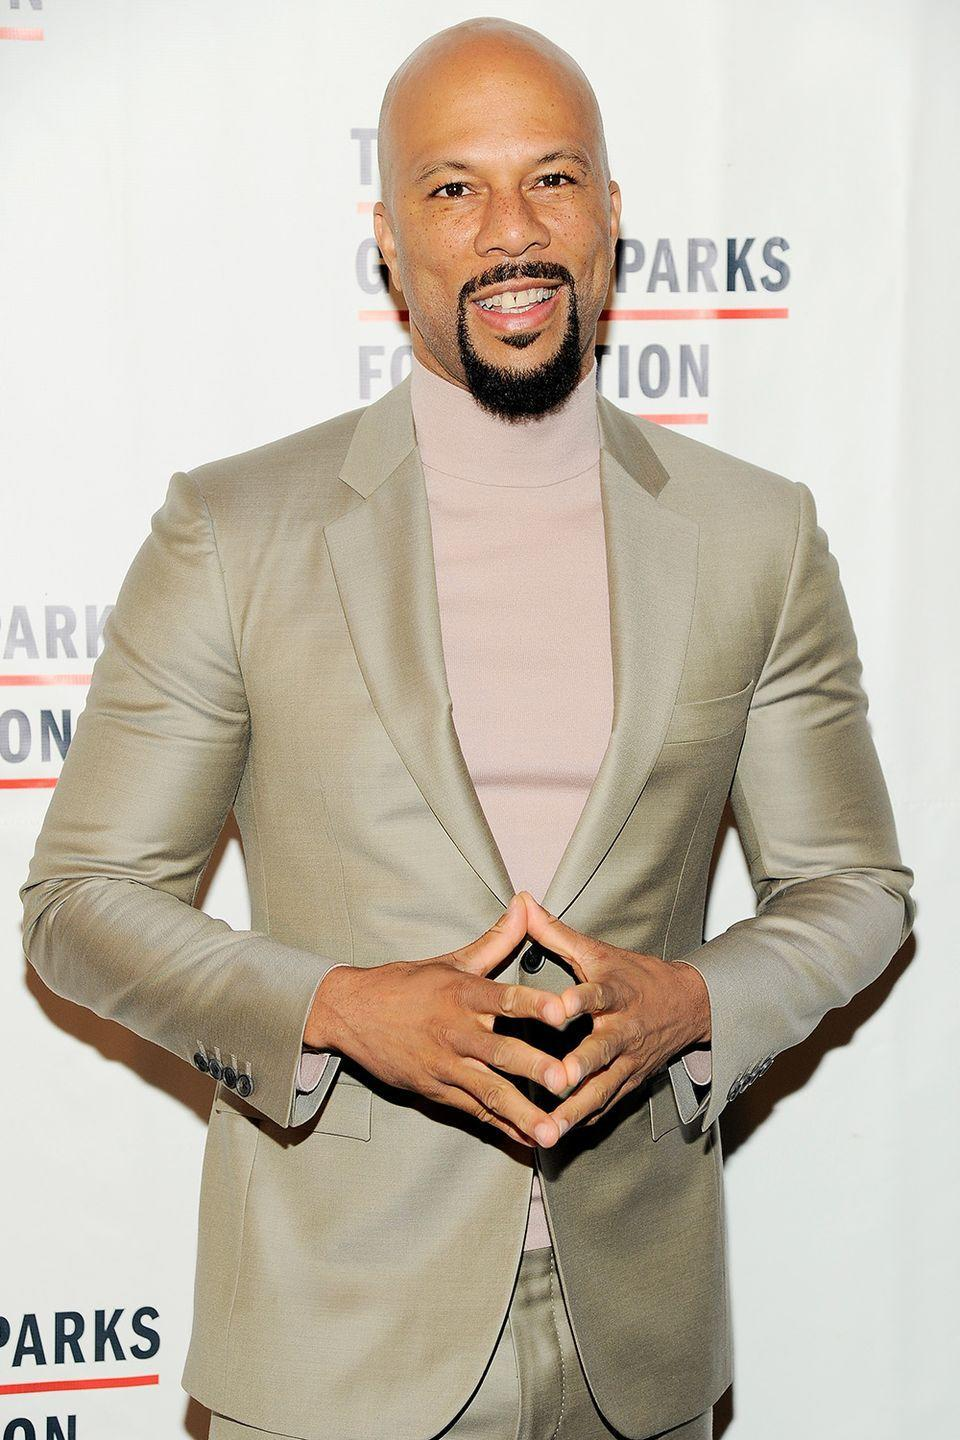 """<p>The famed rapper and now actor has been living the sober life for quite some time now, despite the temptations that come with living that stereotypical musician lifestyle. </p><p>H/T: <a href=""""https://books.google.com/books?id=ziYEAAAAMBAJ&pg=PA108&lpg=PA108&dq=rapper+common+doesn%27t+drink+alcohol&source=bl&ots=vkv0SNR8ku&sig=Y53YZ5SMwE6jUouHbWiO6sXArHg&hl=en&sa=X&ved=0ahUKEwi8n42klb7VAhVBWCYKHc5dBgsQ6AEIcDAO#v=onepage&q&f=false"""" rel=""""nofollow noopener"""" target=""""_blank"""" data-ylk=""""slk:Vibe"""" class=""""link rapid-noclick-resp"""">Vibe</a></p>"""